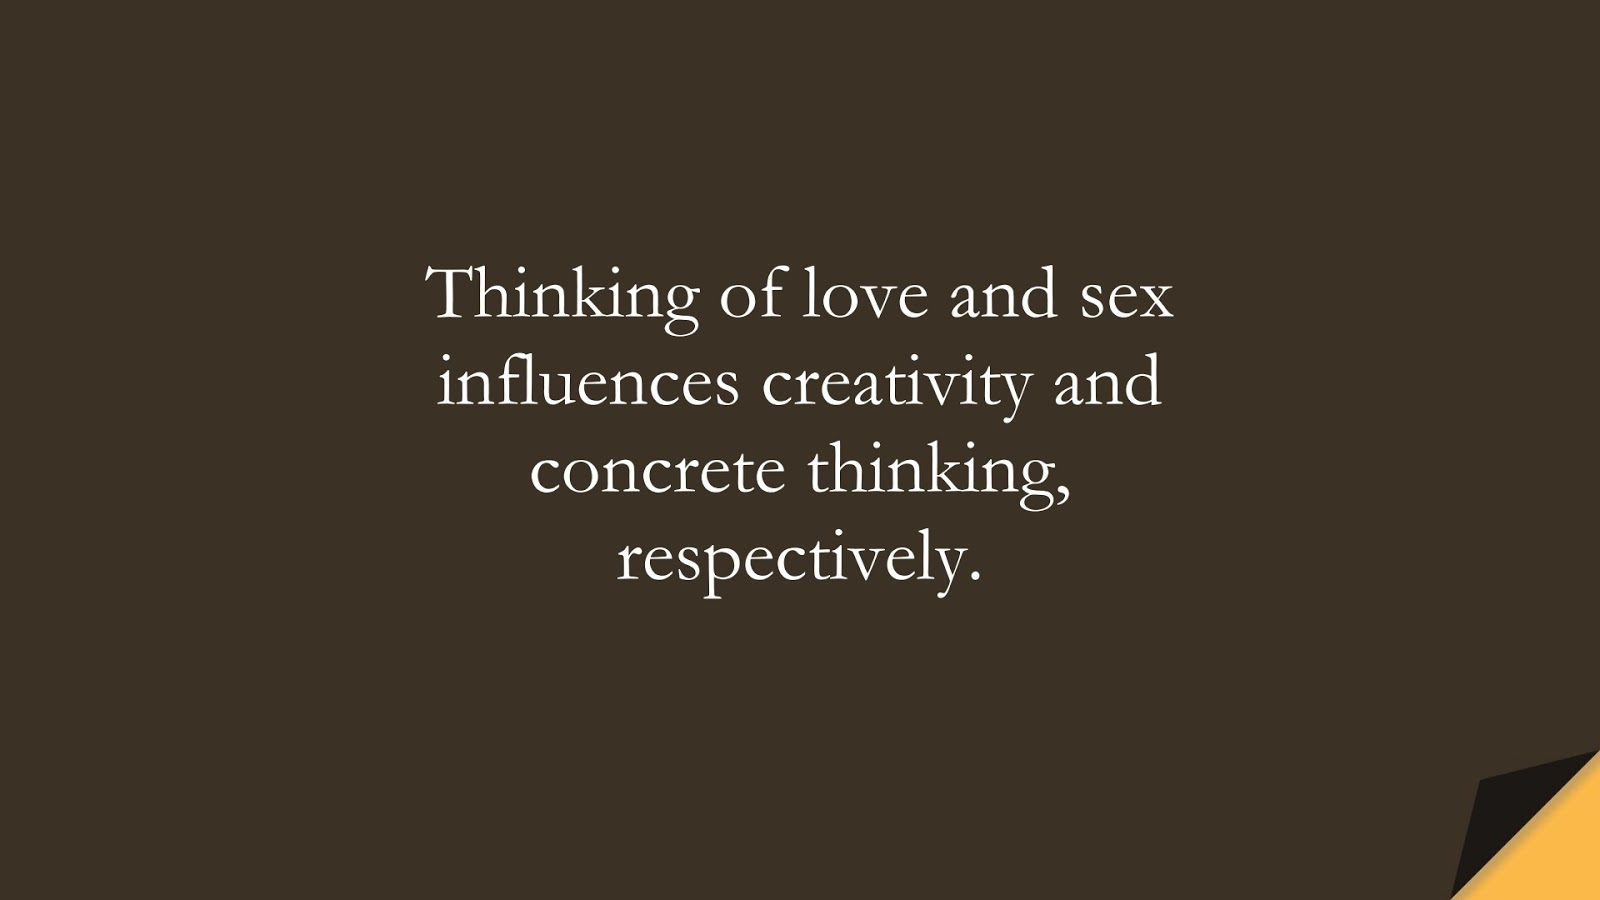 Thinking of love and sex influences creativity and concrete thinking, respectively.FALSE